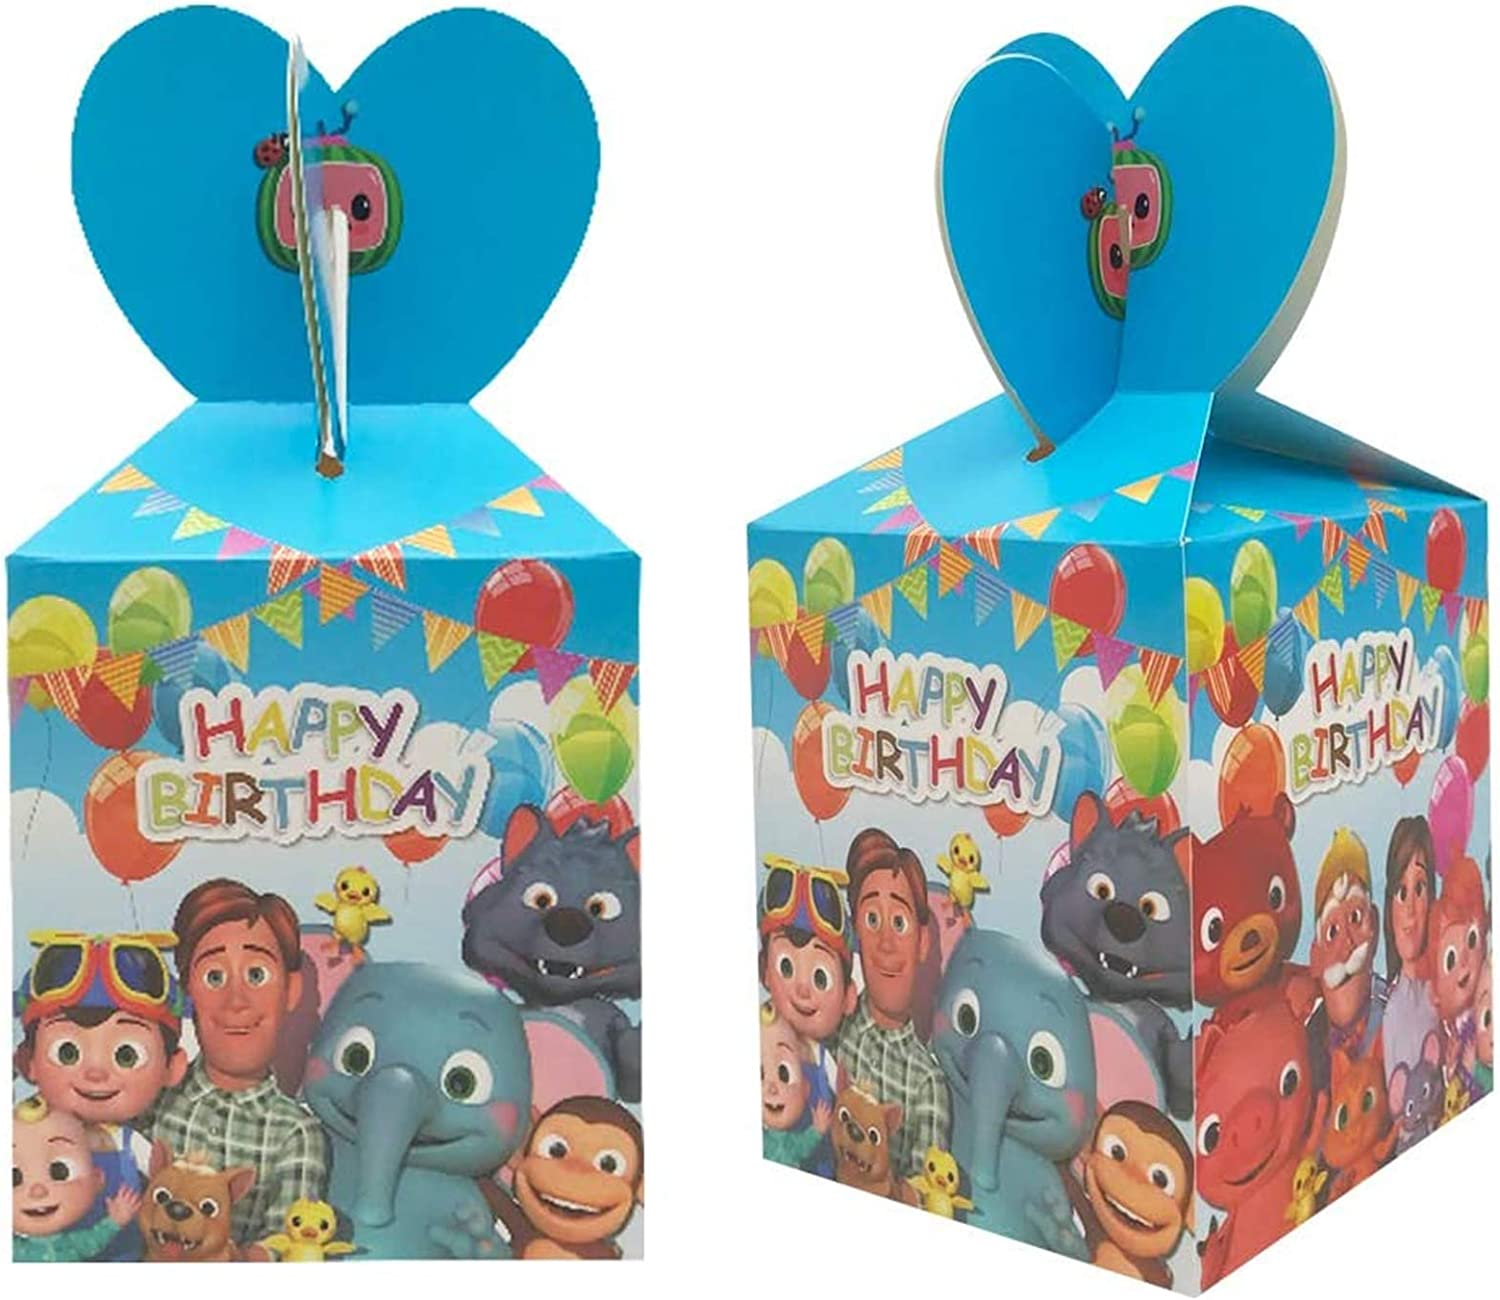 18 Pack Cocomelon Candy Gift Boxes, Cocomelon Themed Party Supplies, Children's Birthday Party Snack Boxes